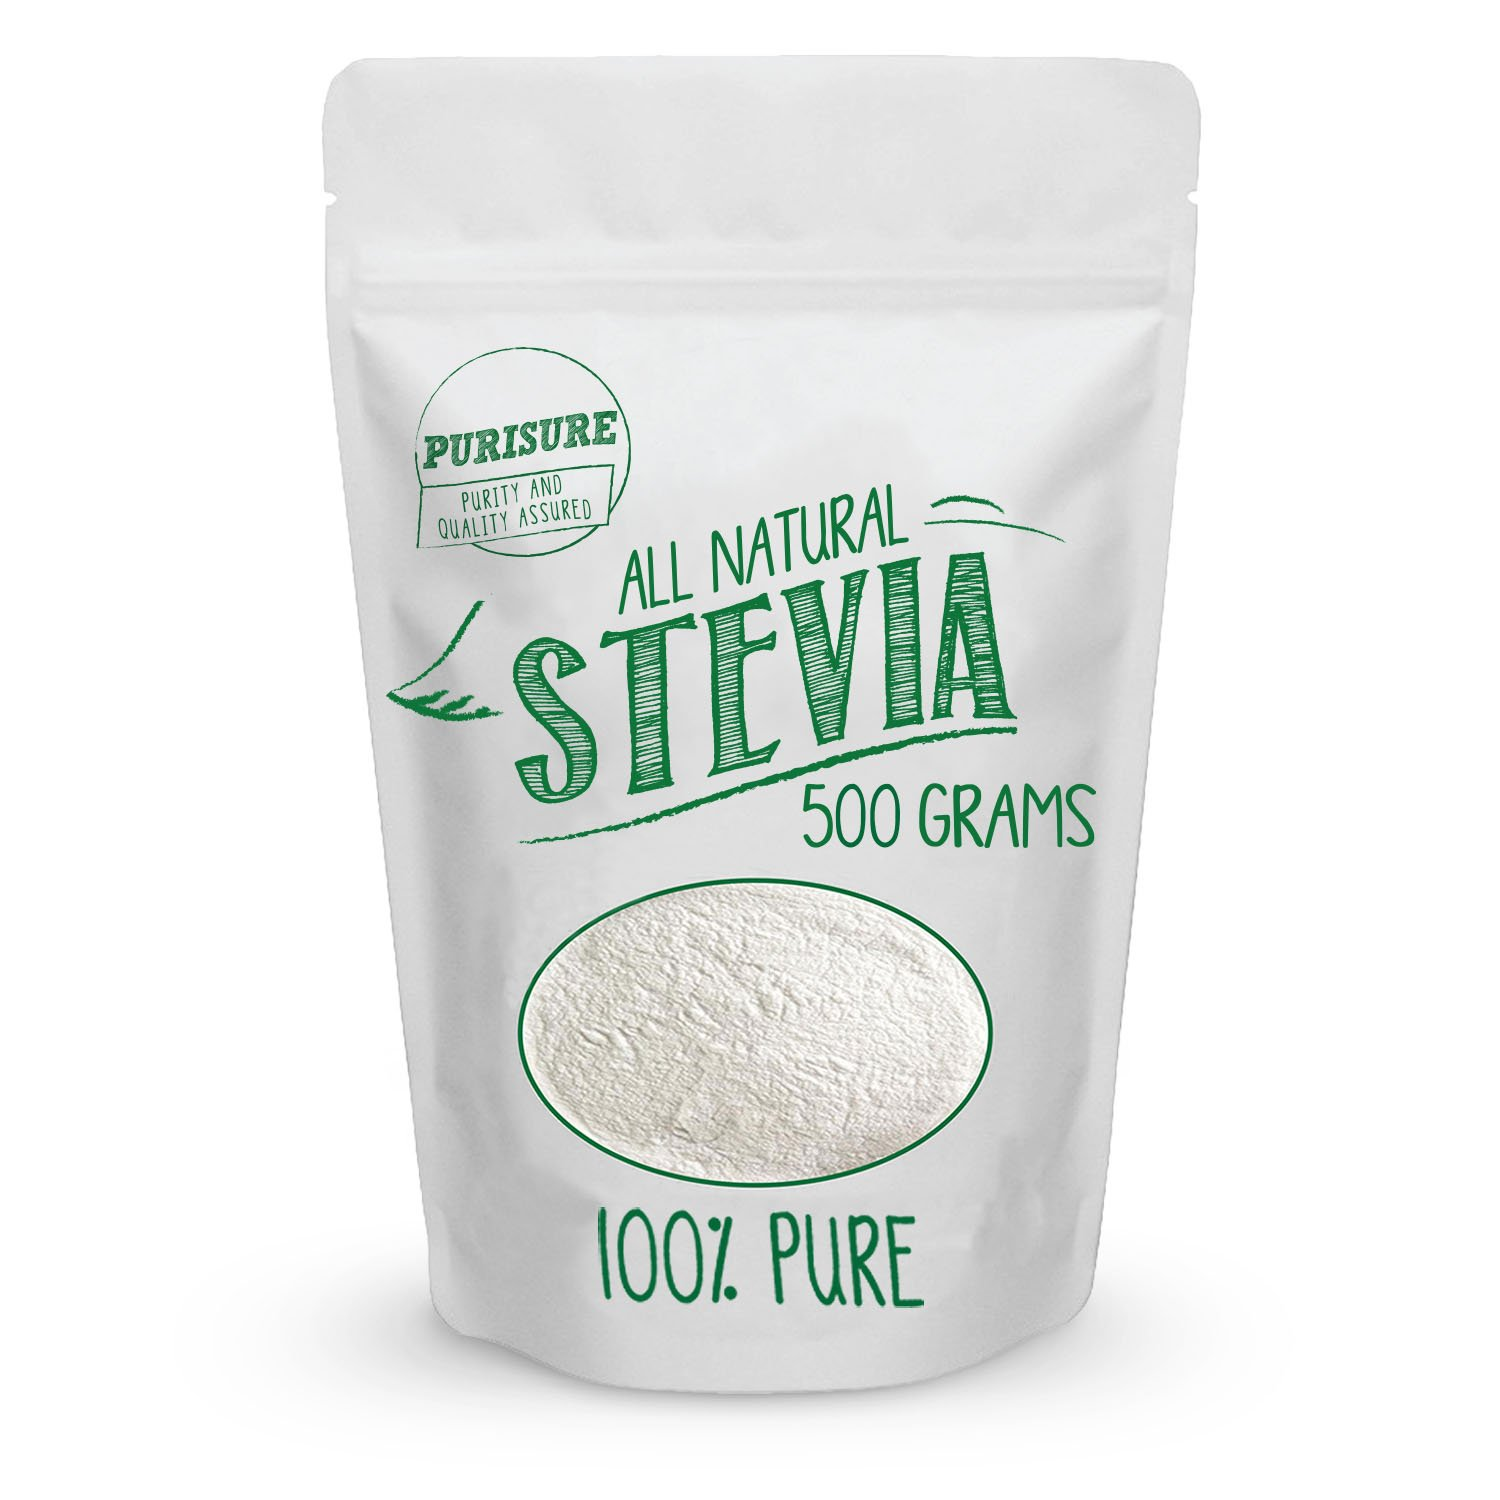 All Natural Stevia Powder 500g (3384 Servings) | Highly Concentrated Pure Extract | No Fillers, Additives or Artificial Ingredients | Zero-Calorie Sweetener | Best Sugar Substitute